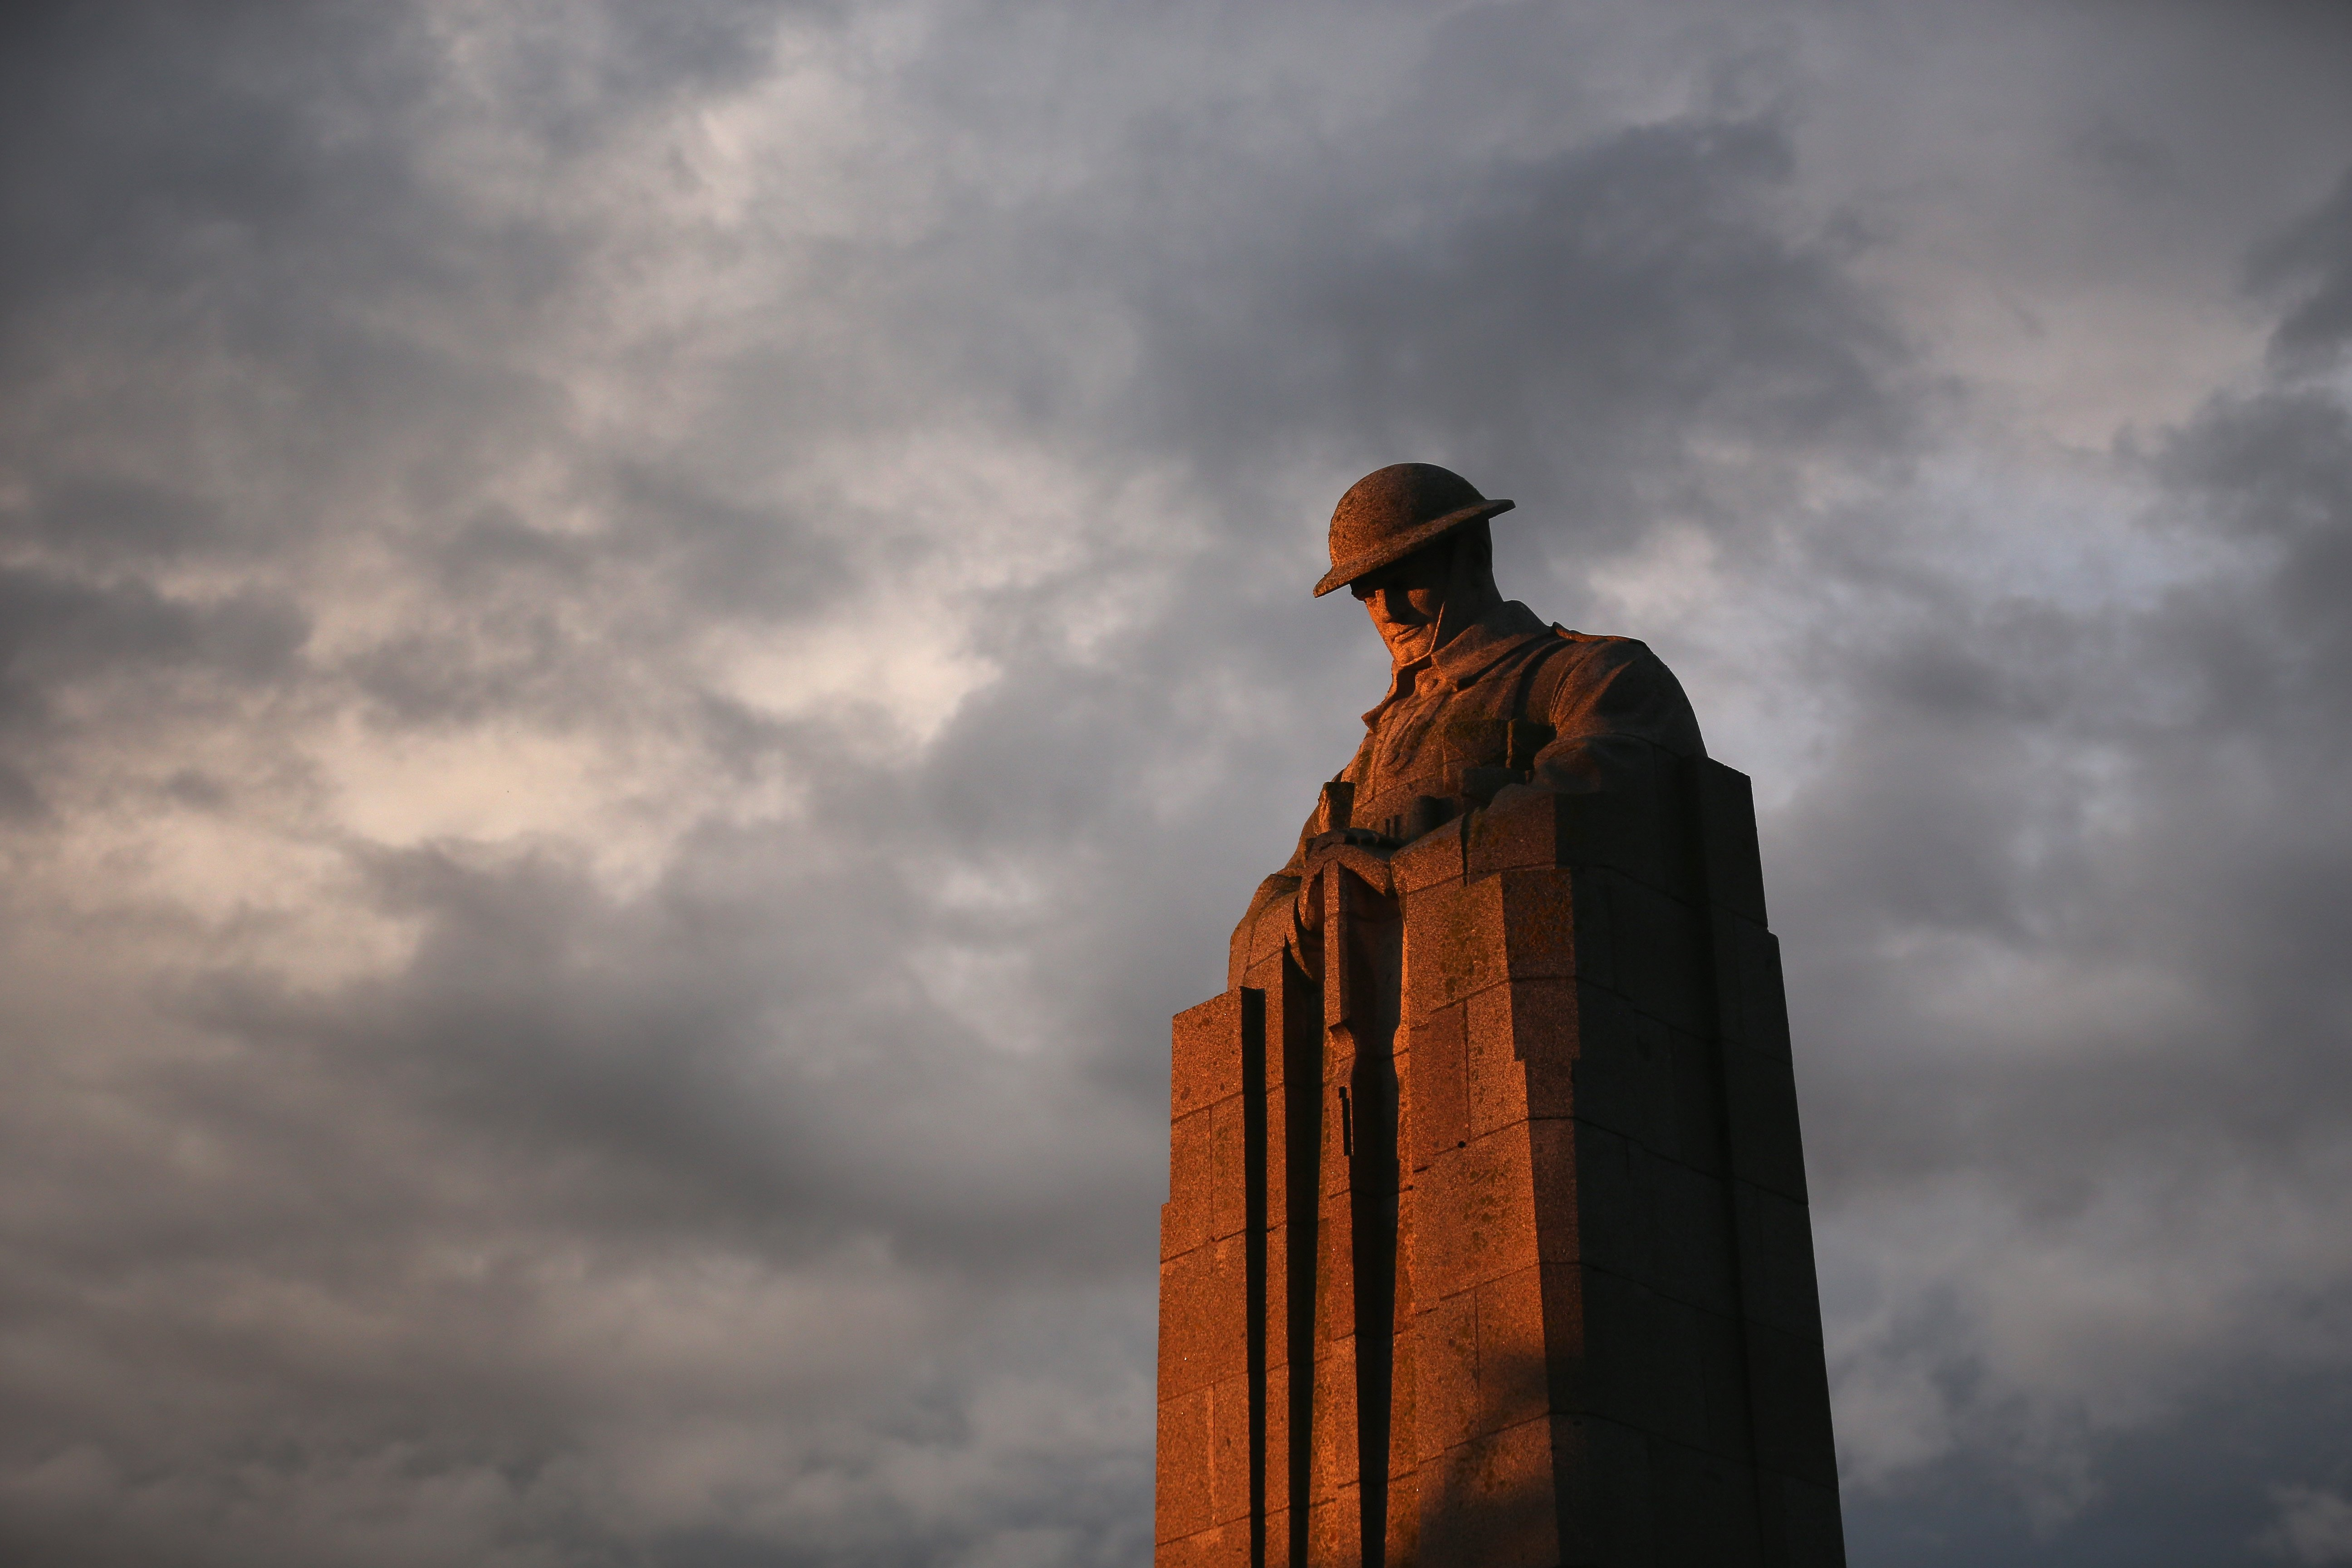 Aug. 2, 2014. The setting sun illuminates the sculpture of the  'Brooding Soldier' the monument commemorates the Canadian First Division's participation in the Second Battle of Ypres of World War I.